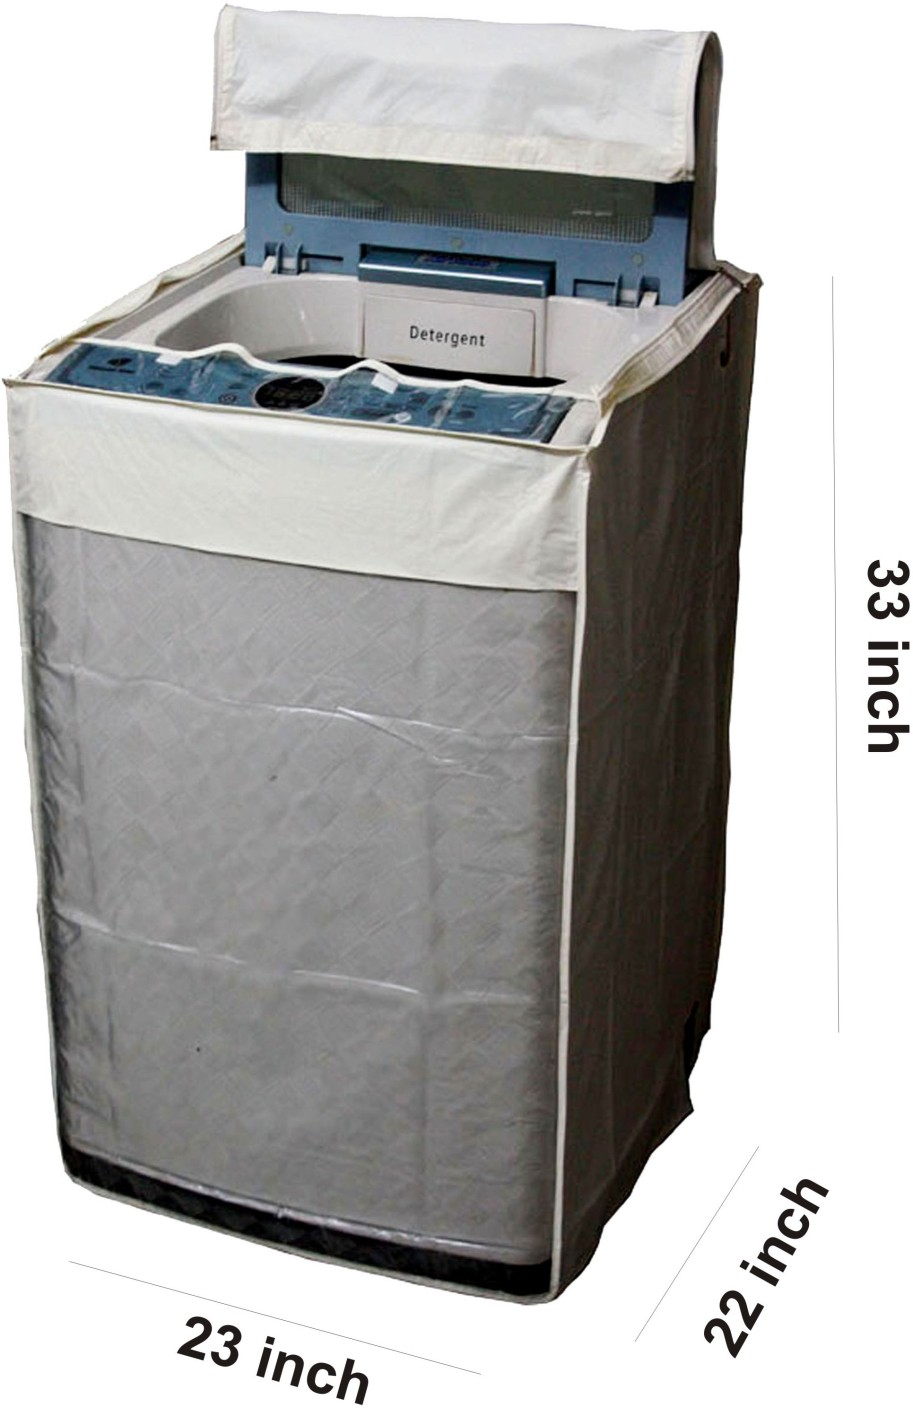 Buy Washing Machine Cover Online